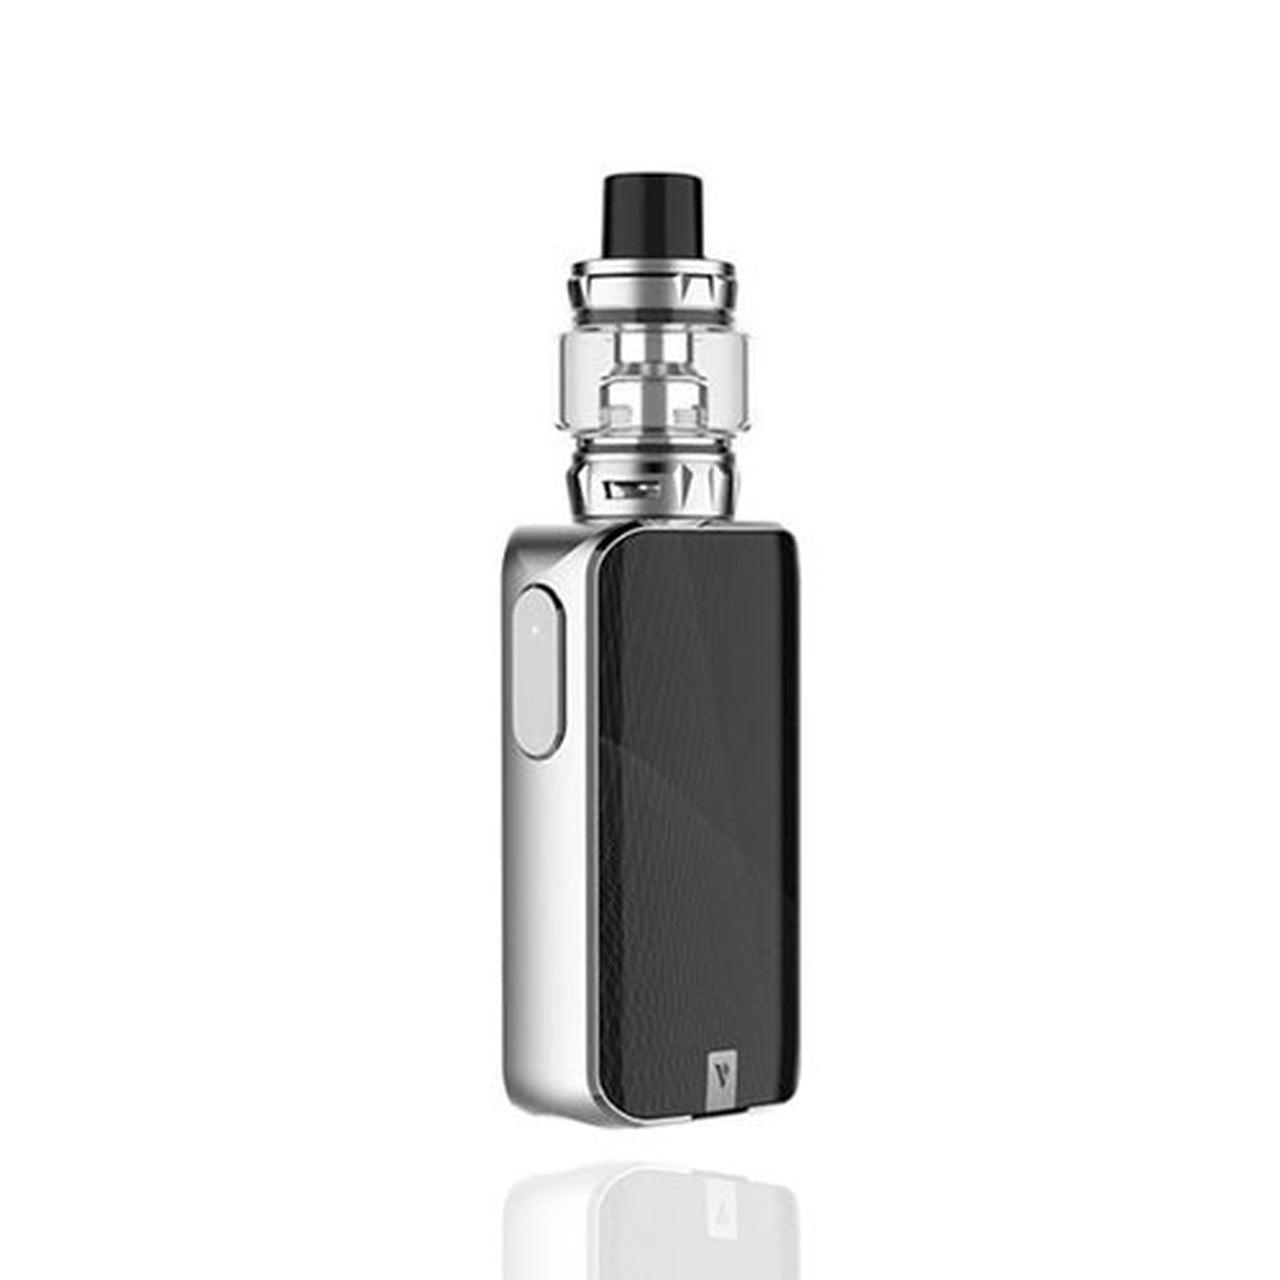 Vaporesso Luxe S Kit Silver | Phantom Vape Supply